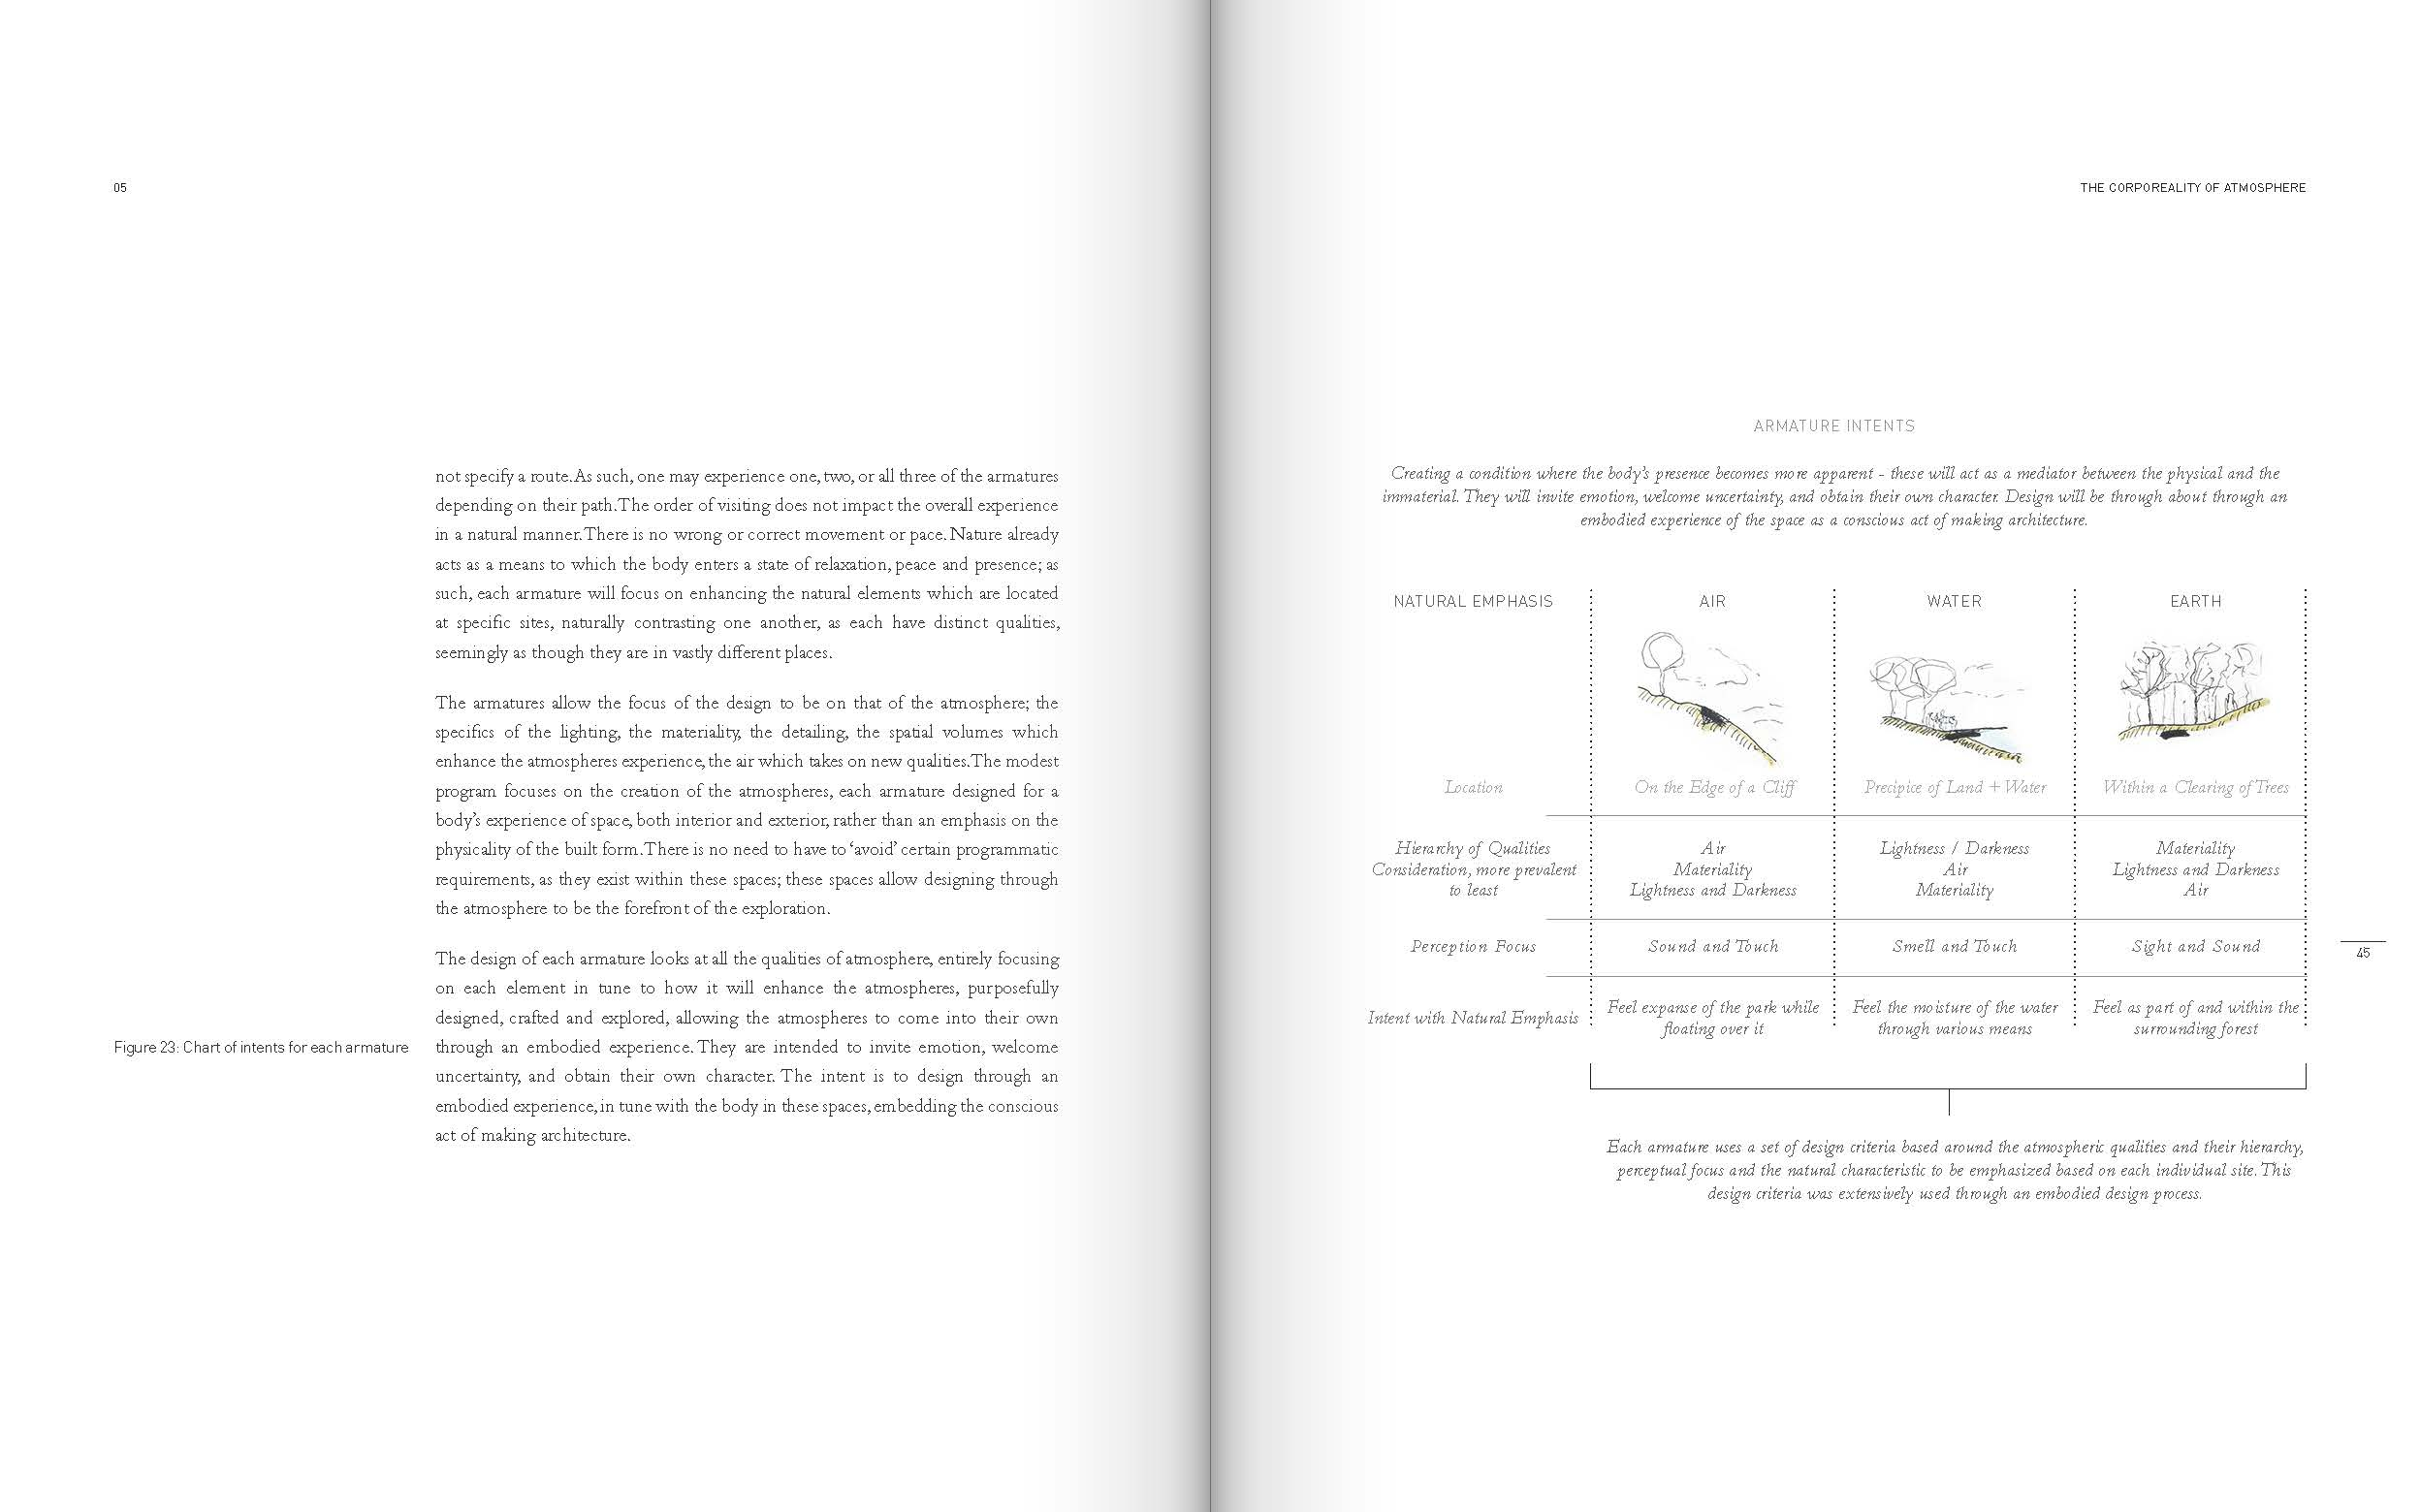 On The Corporeality of Atmosphere_J Walker_Paul Spreads w seam_Page_10.jpg